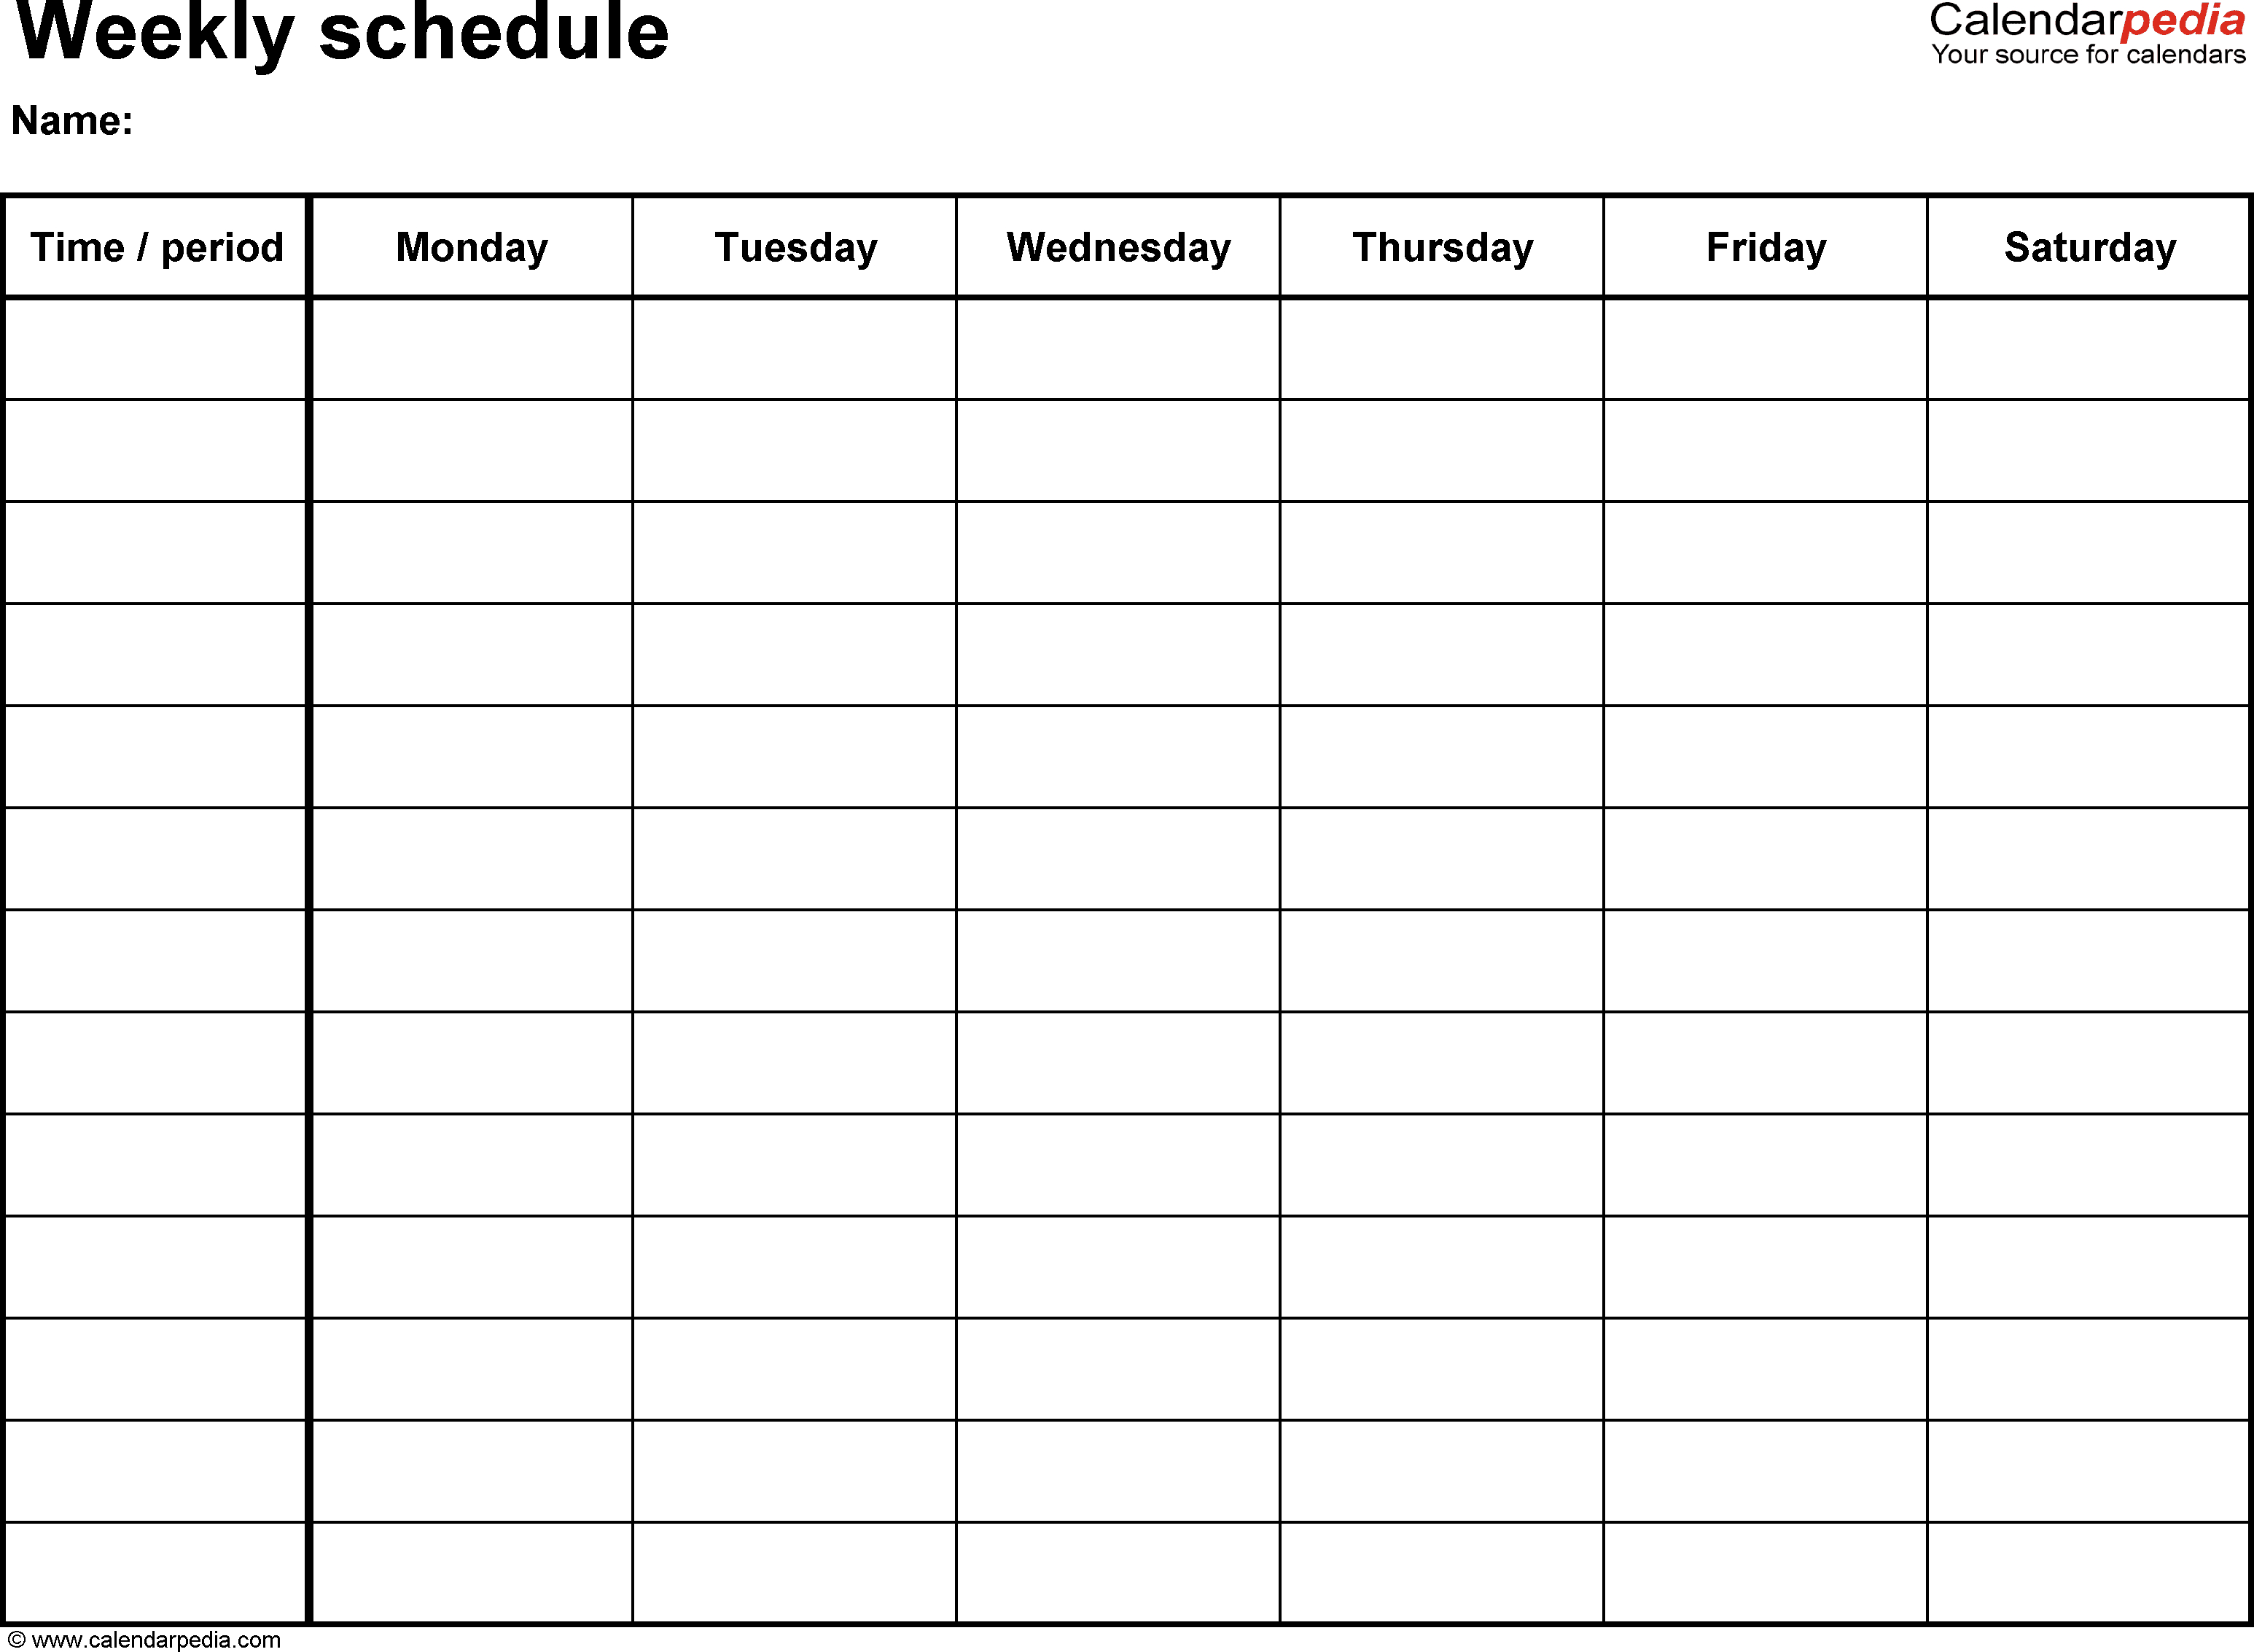 Free Weekly Schedule Templates For Word - 18 Templates in Weekly Planner Template For Students